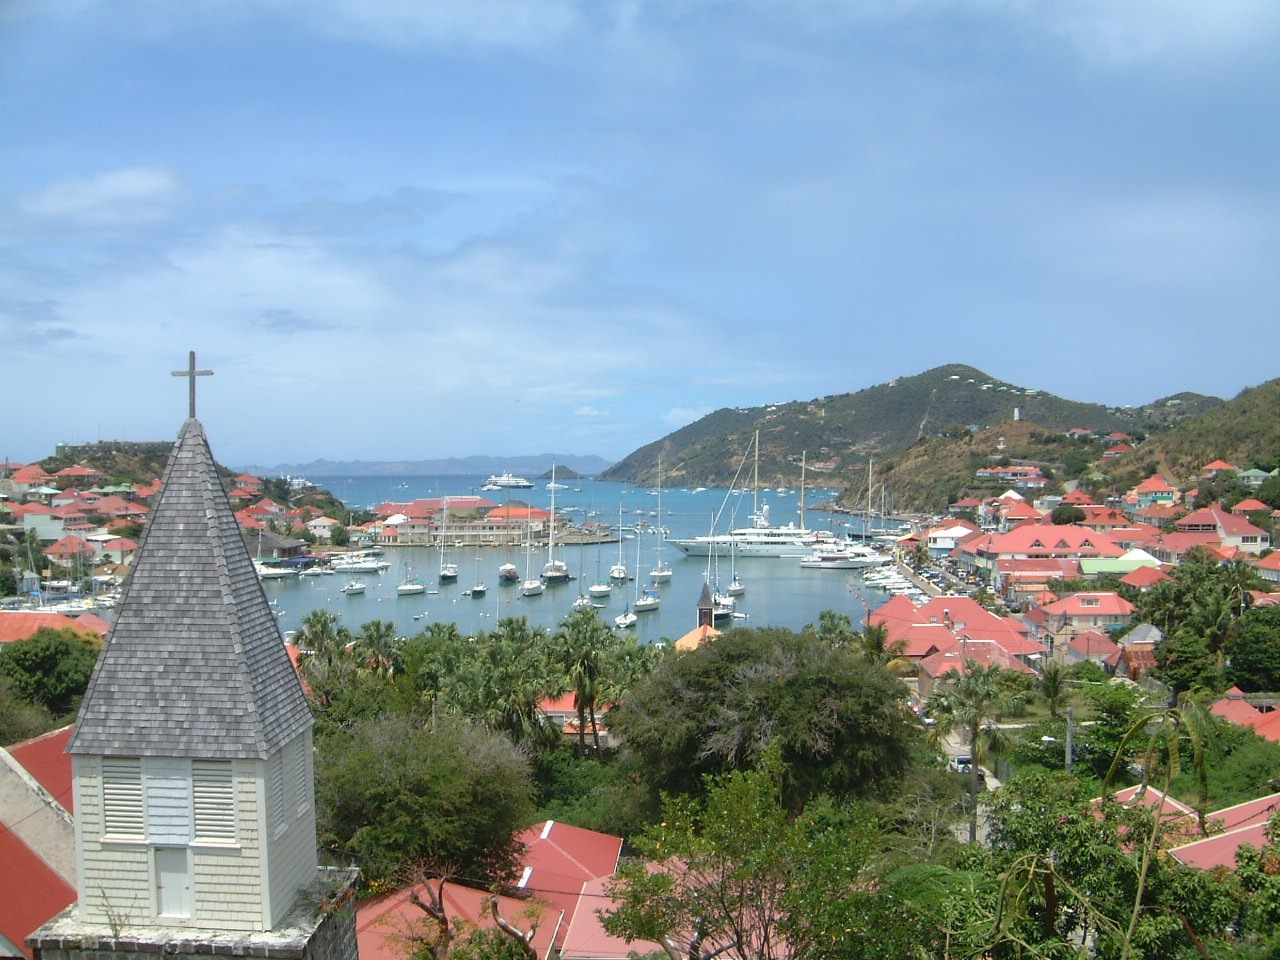 From Gustavia's amazing harbor to its stunning beaches, there is much to love about beautiful St. Barts ... photo by CC user Evaneggers on wikimedia